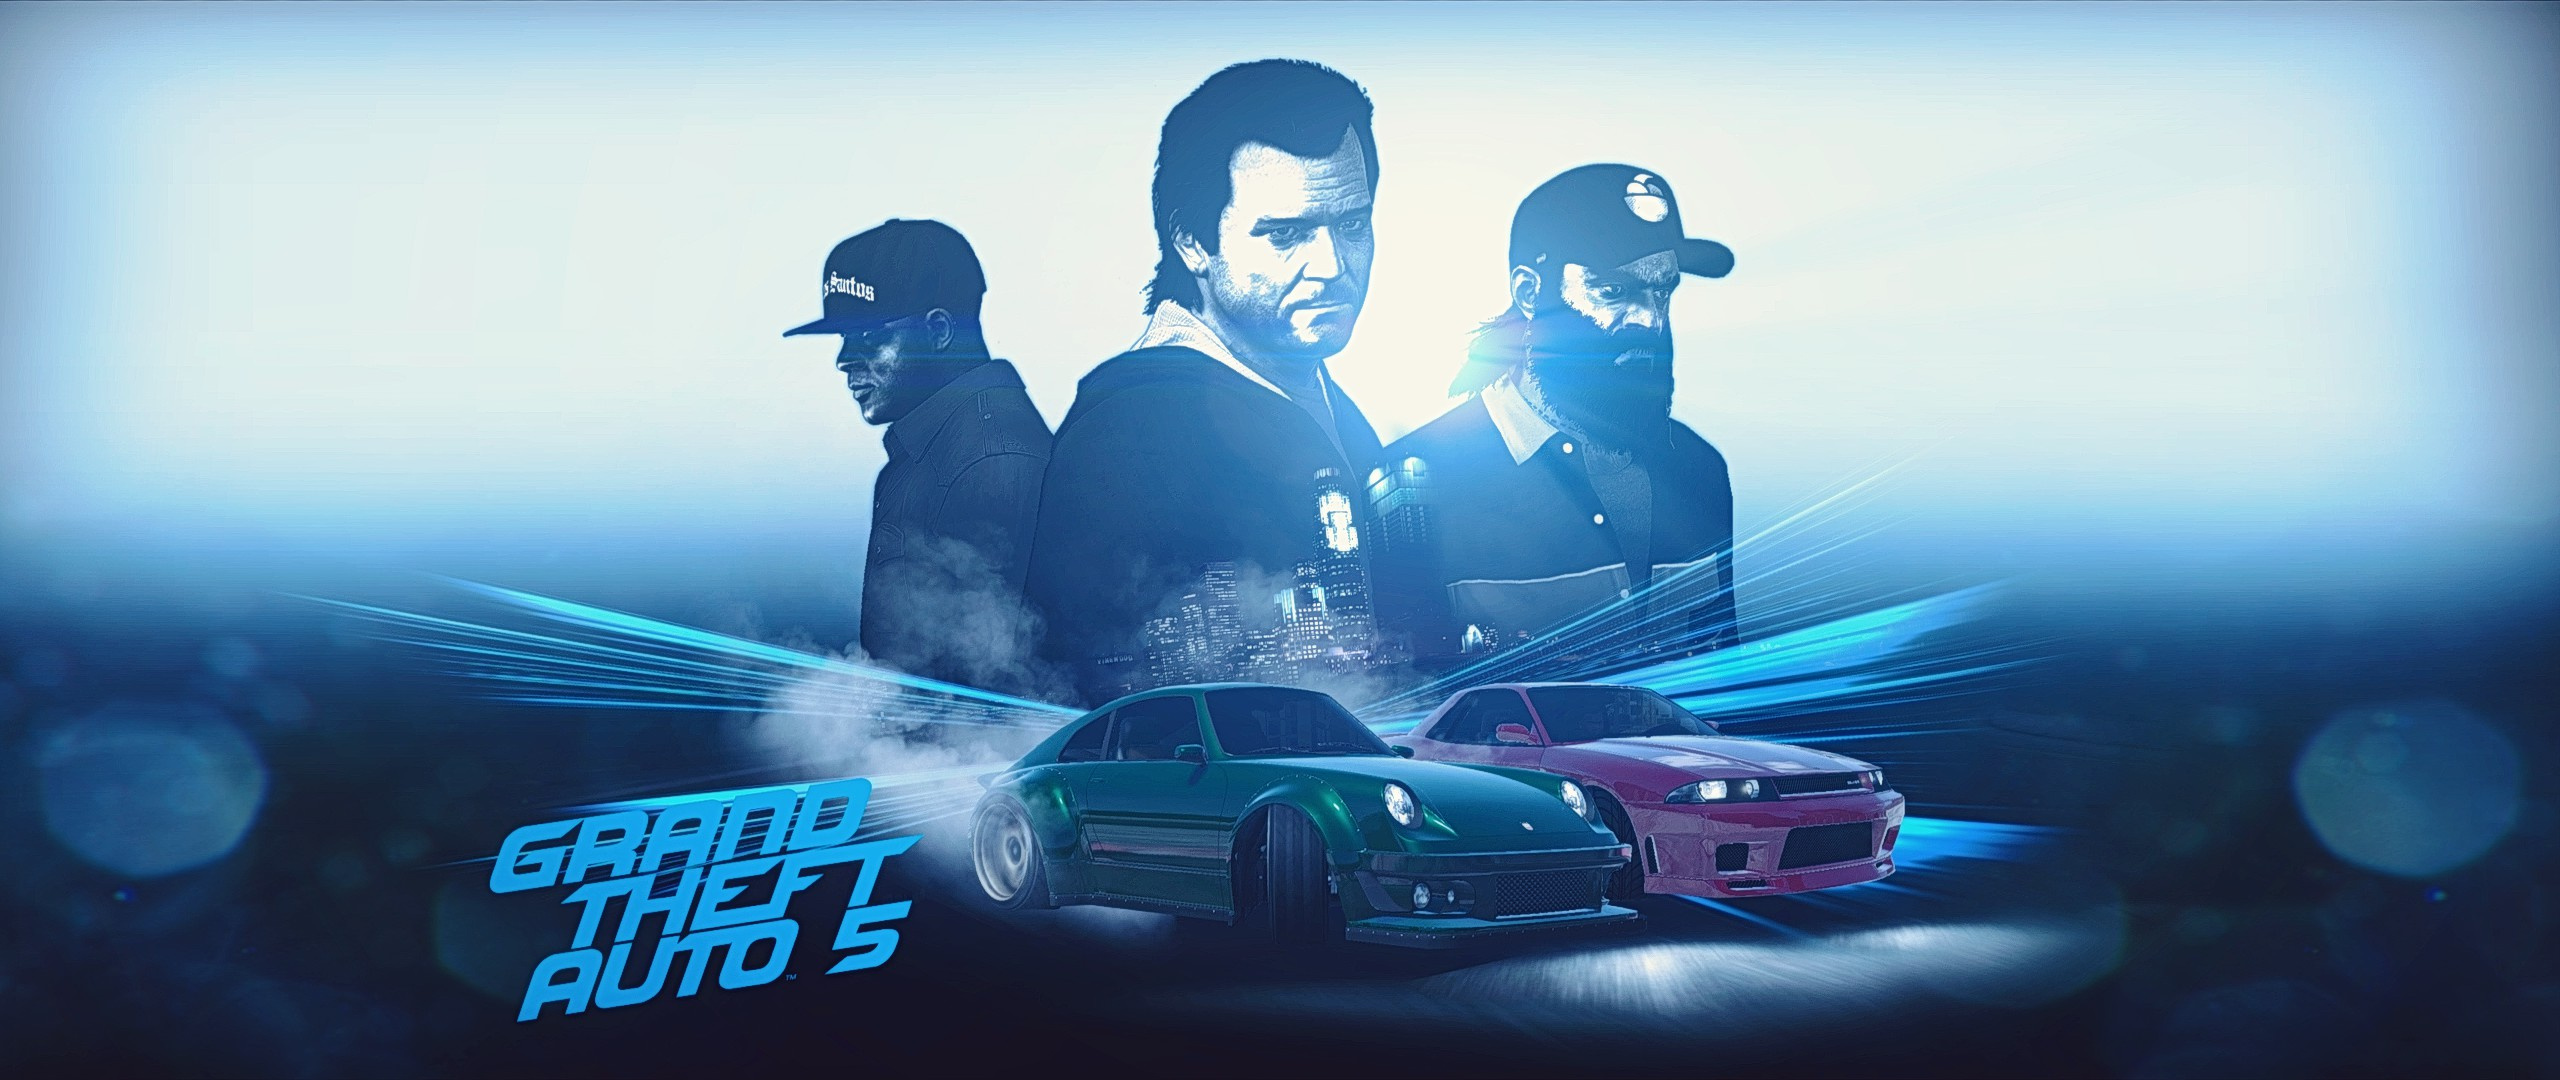 GTA5 - Need For Speed 2015 Style Intro Video (2K 60FPS